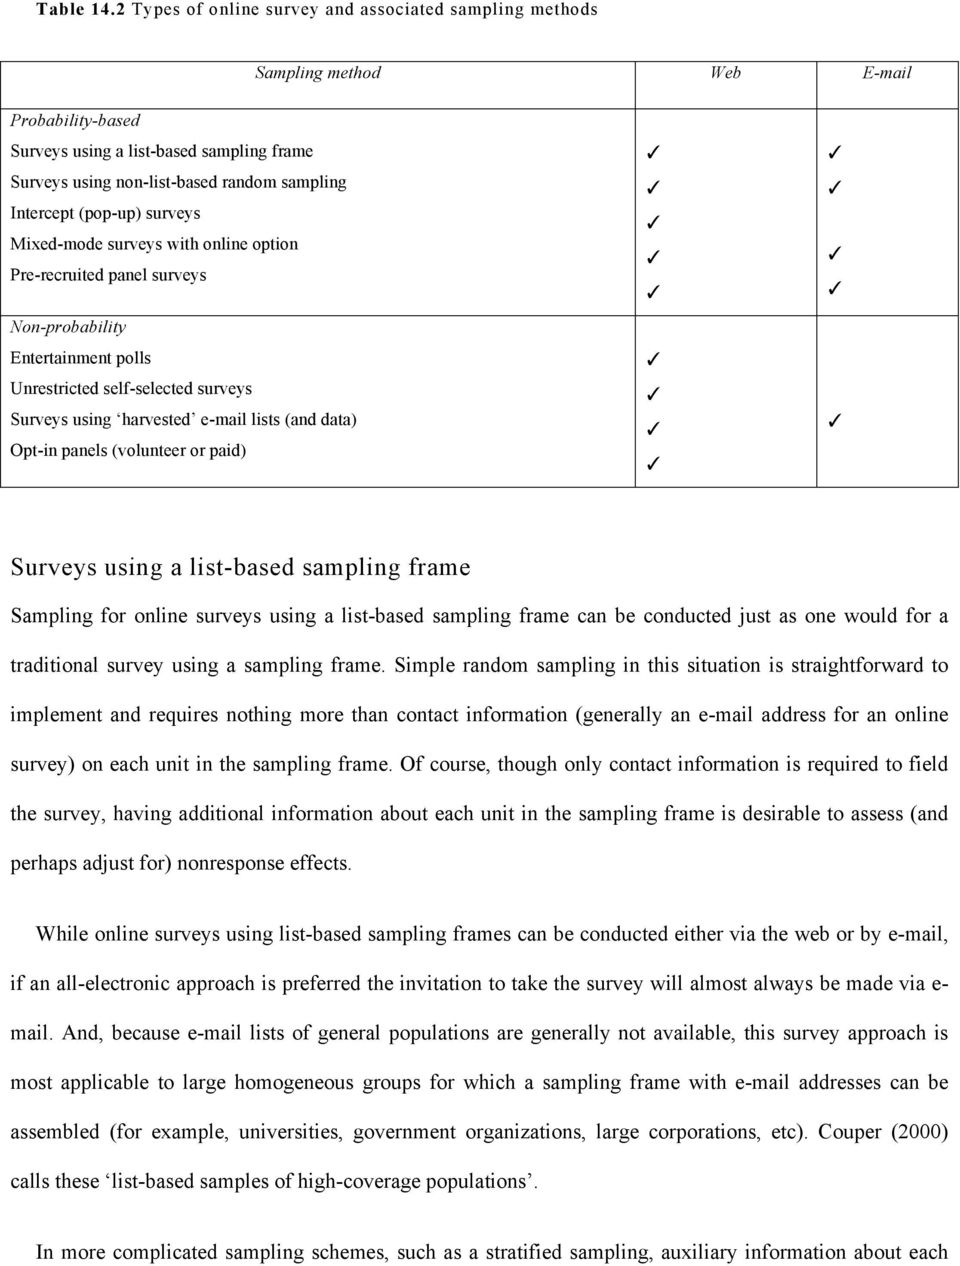 Sampling Methods for Online Surveys - PDF